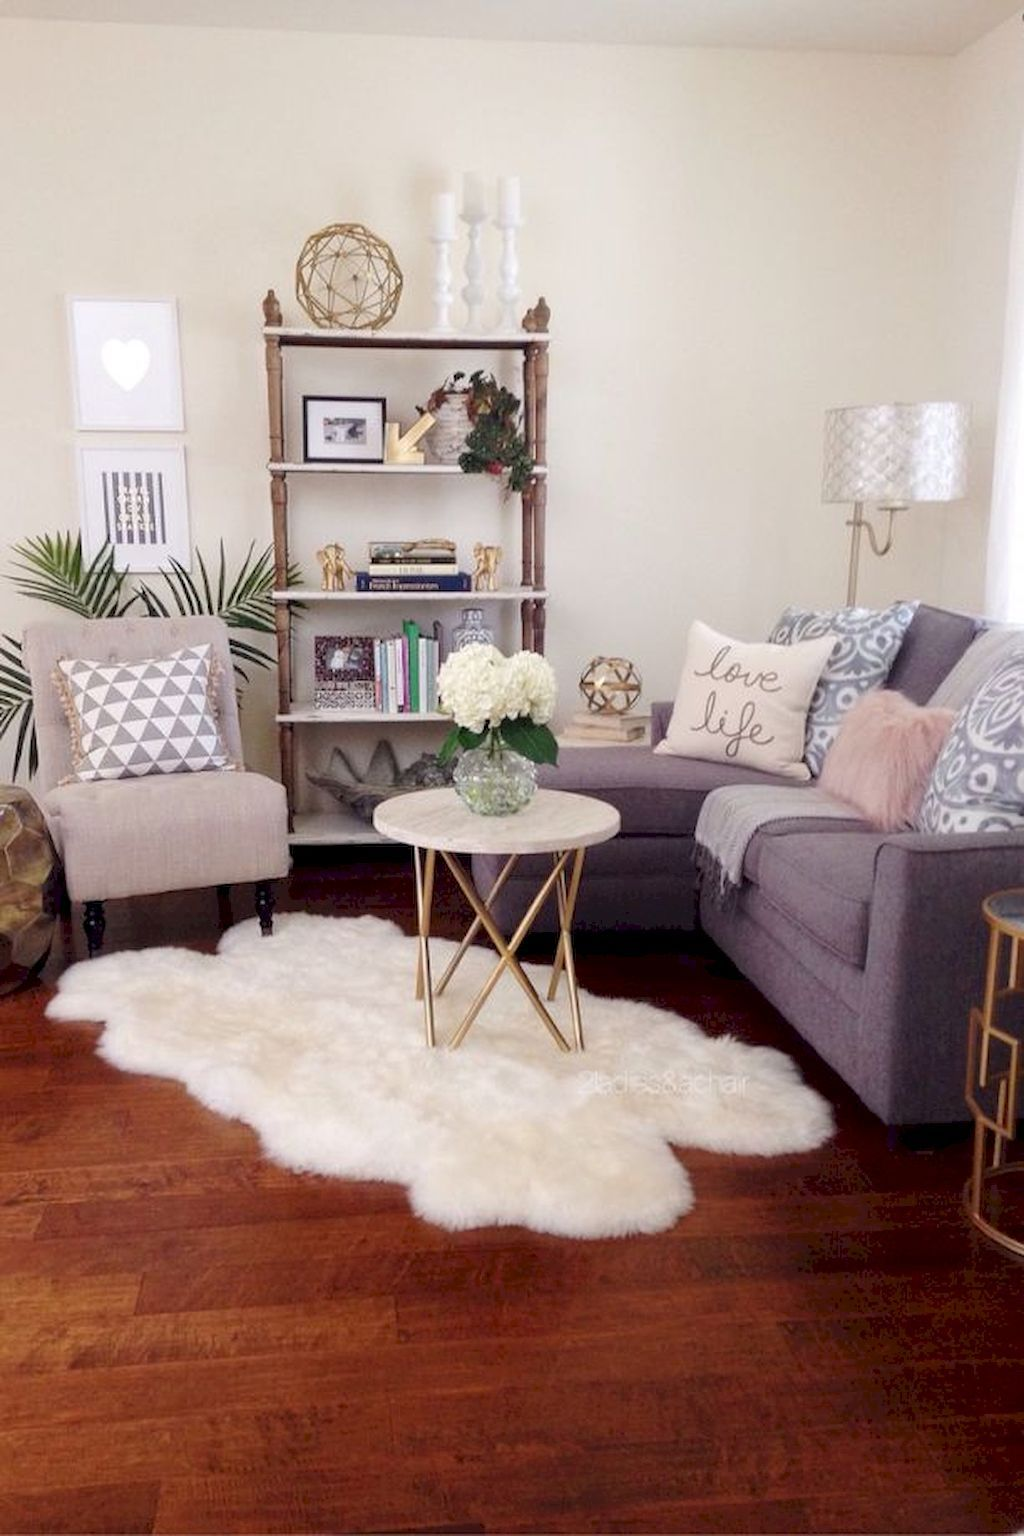 70 DIY Rental Apartment Decorating Ideas | Apartments decorating ...